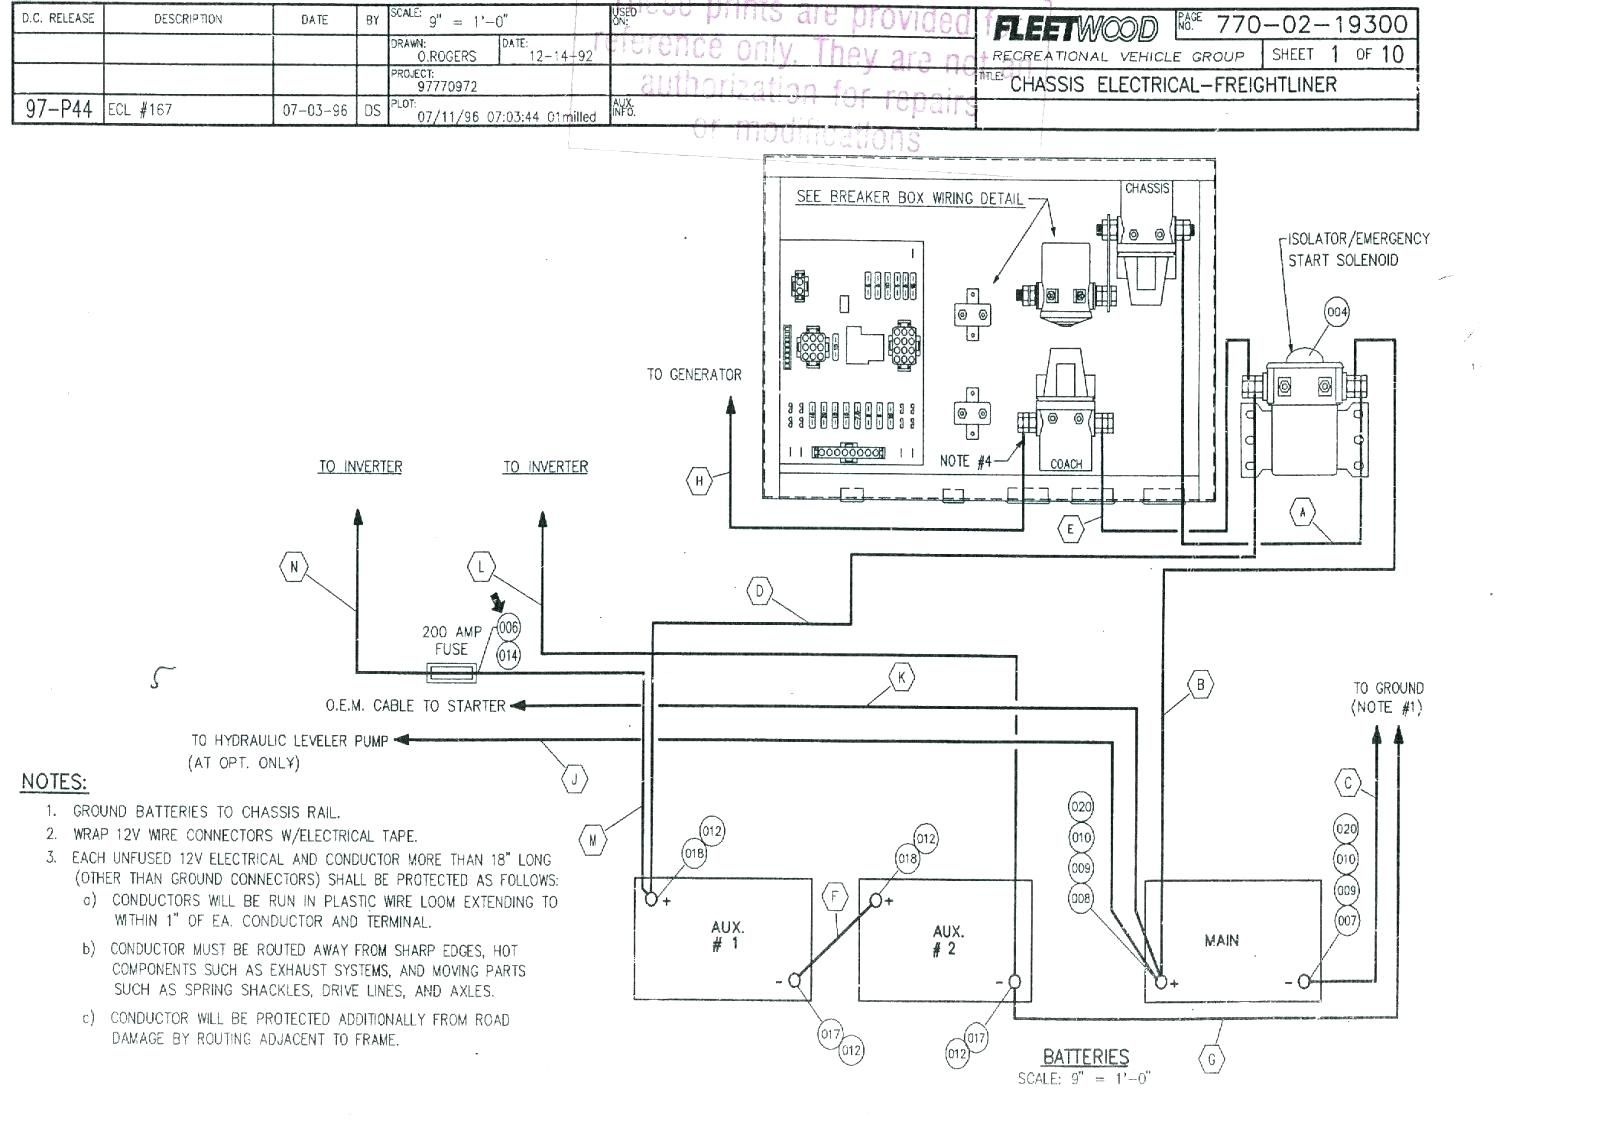 [FPER_4992]  winnebago wiring diagram pictures wiring diagram wiring diagram chieftain  net 1984 winnebago chieftain wiring … | Freightliner, Diagram, Paint colors  benjamin moore | 1997 Freightliner Wiring Diagram |  | Pinterest